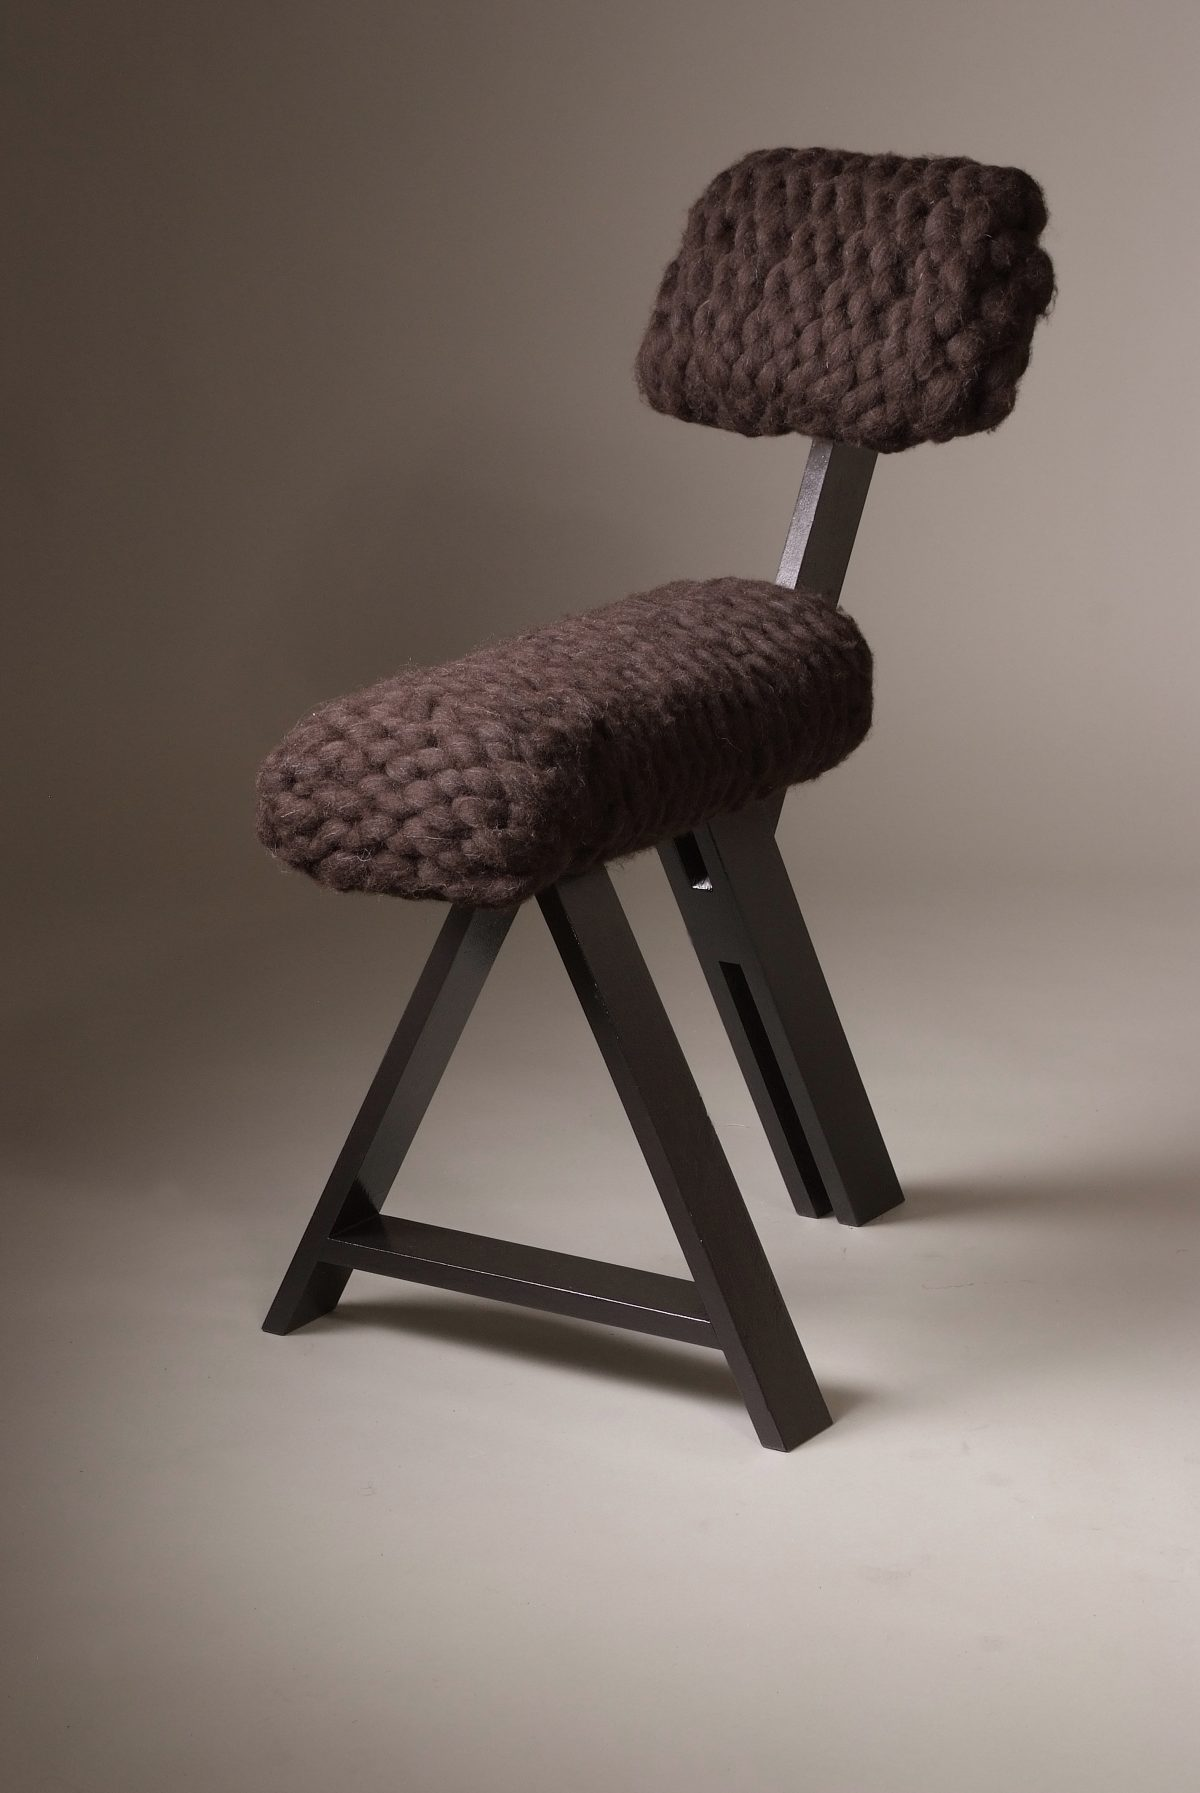 Sheep Chair Brown – Studio Jolanda van Goor